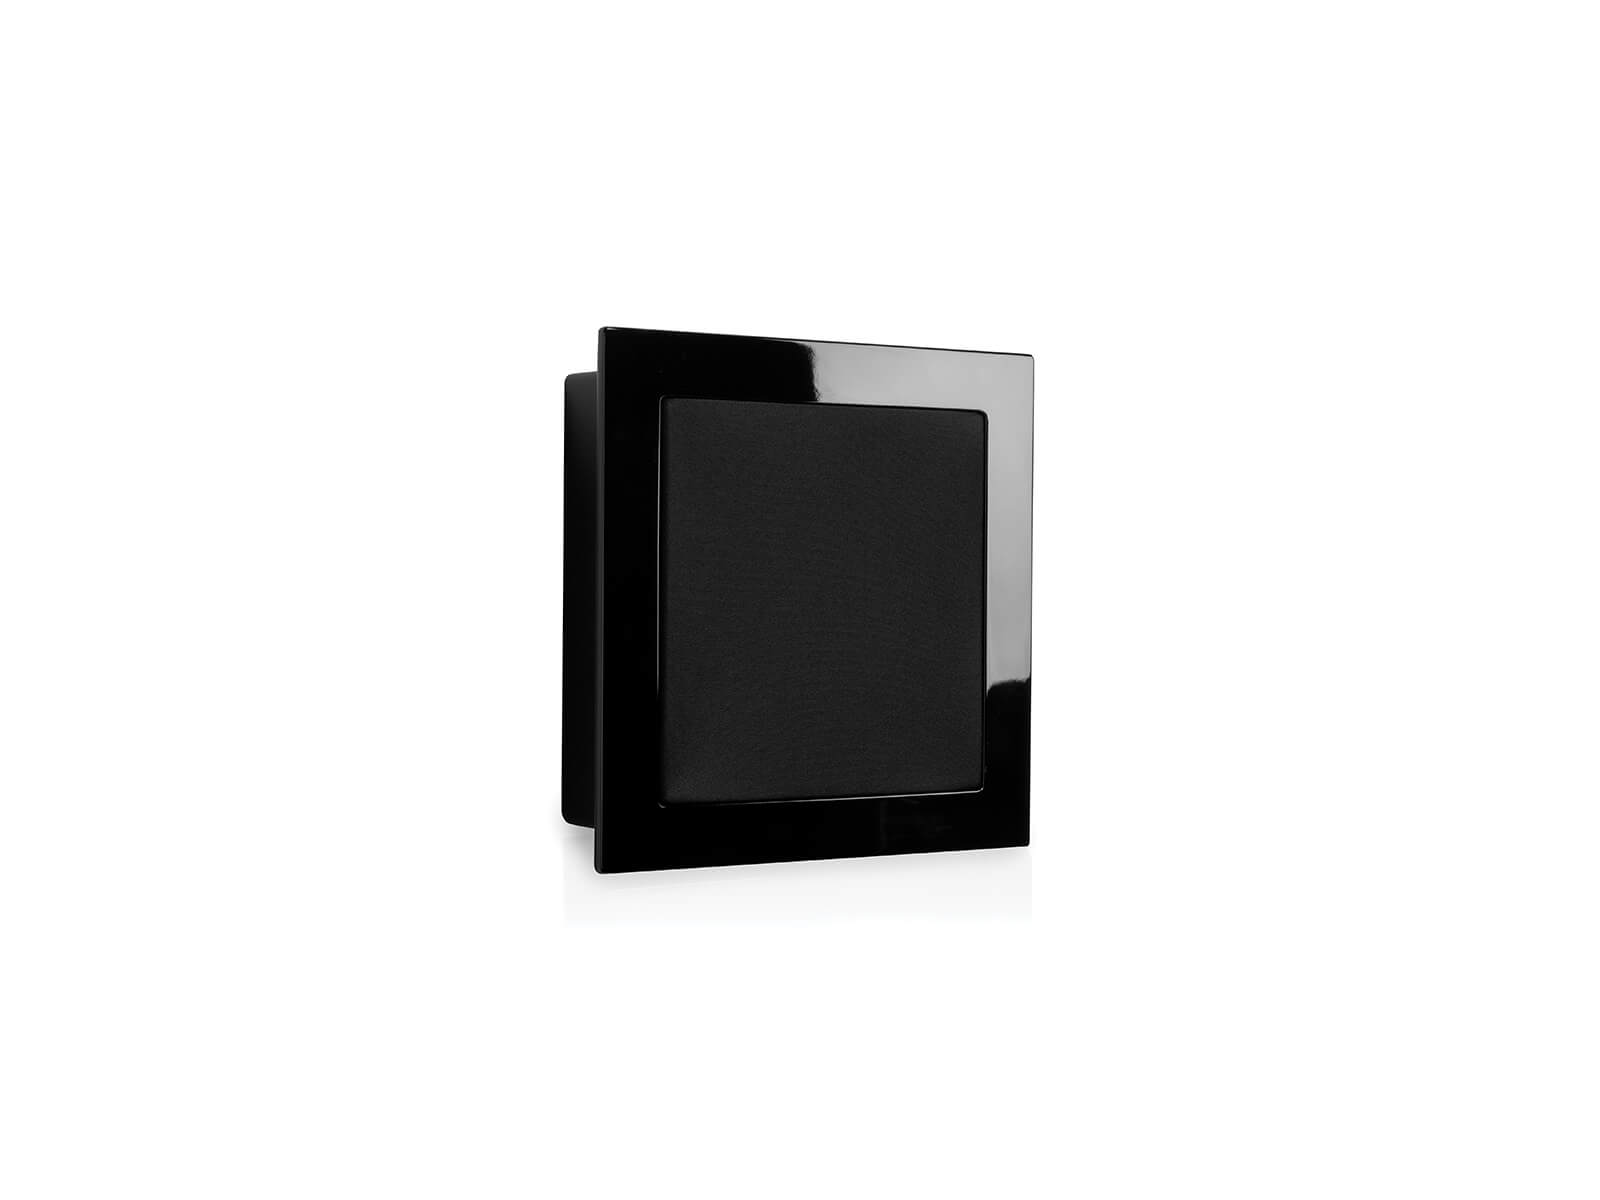 SoundFrame SF3, on-wall speakers, with a high gloss black lacquer finish.